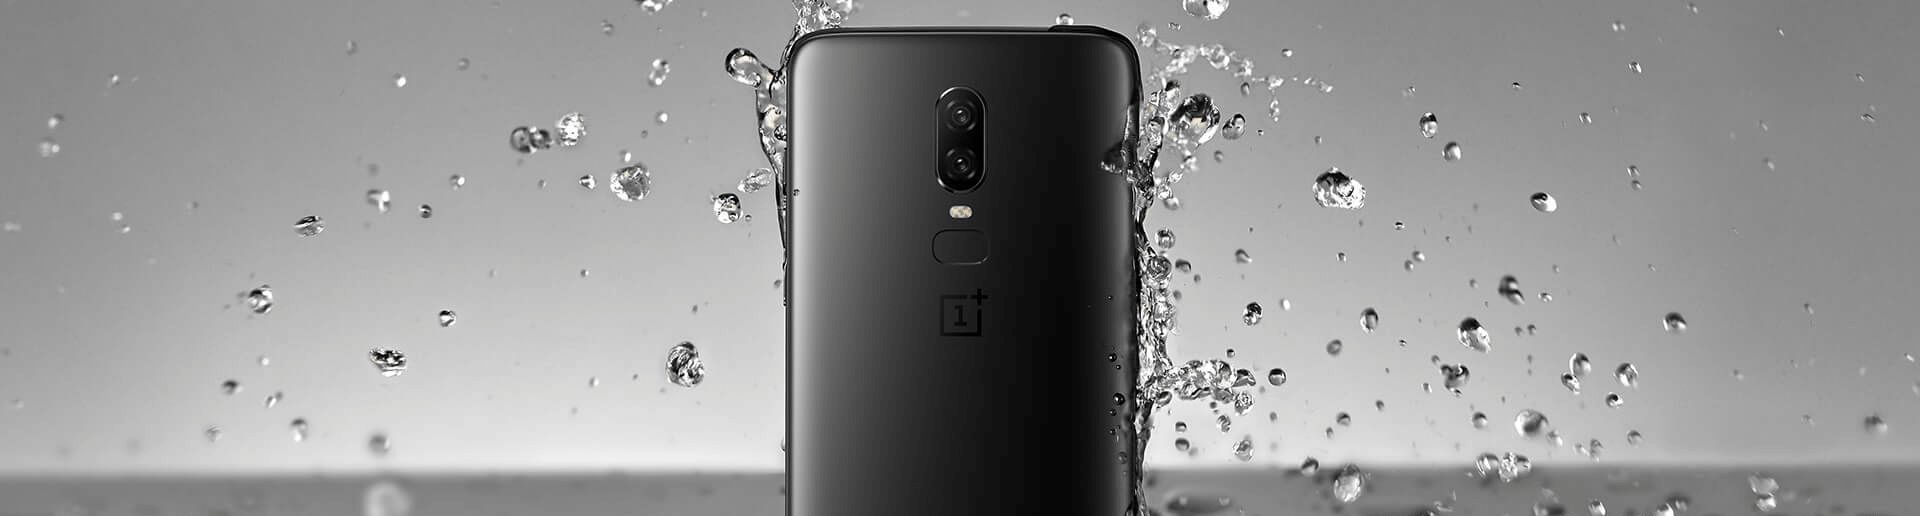 OnePlus 6 price in Doha Qatar